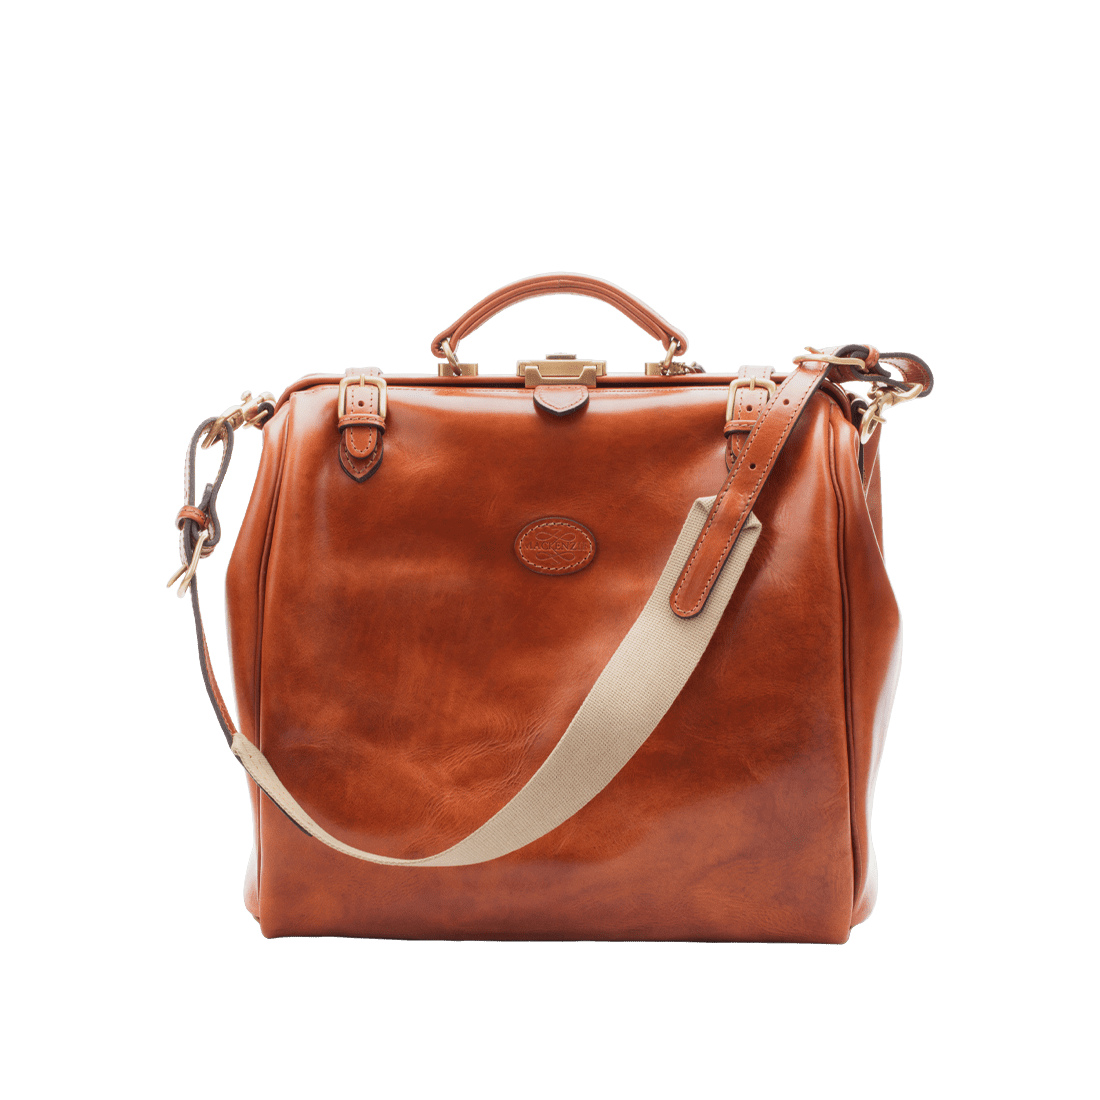 The Gladstone leather shiny tan